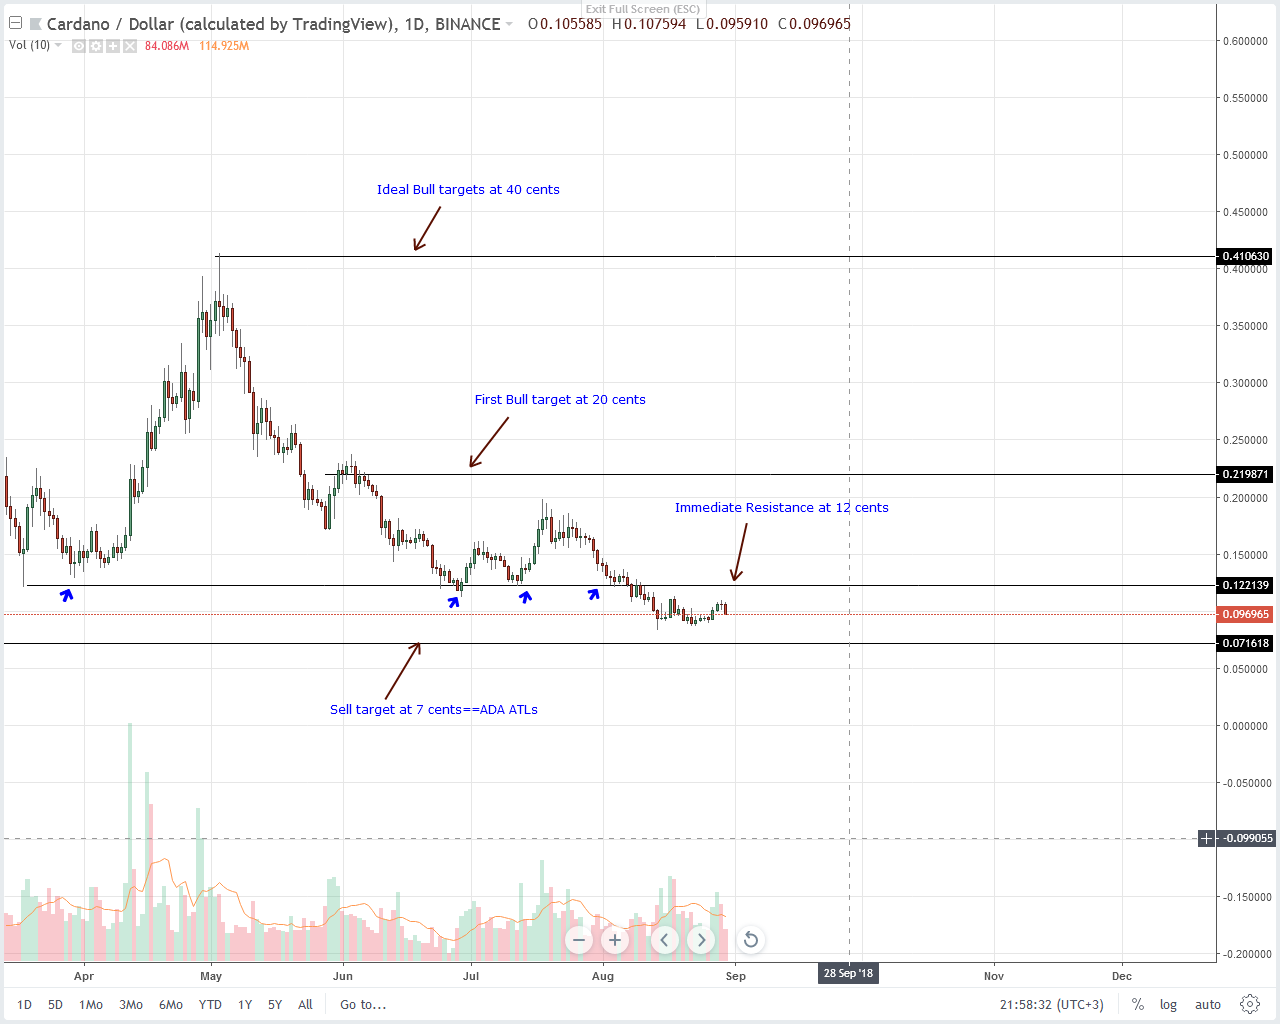 Cardano (ADA) Technical Analysis